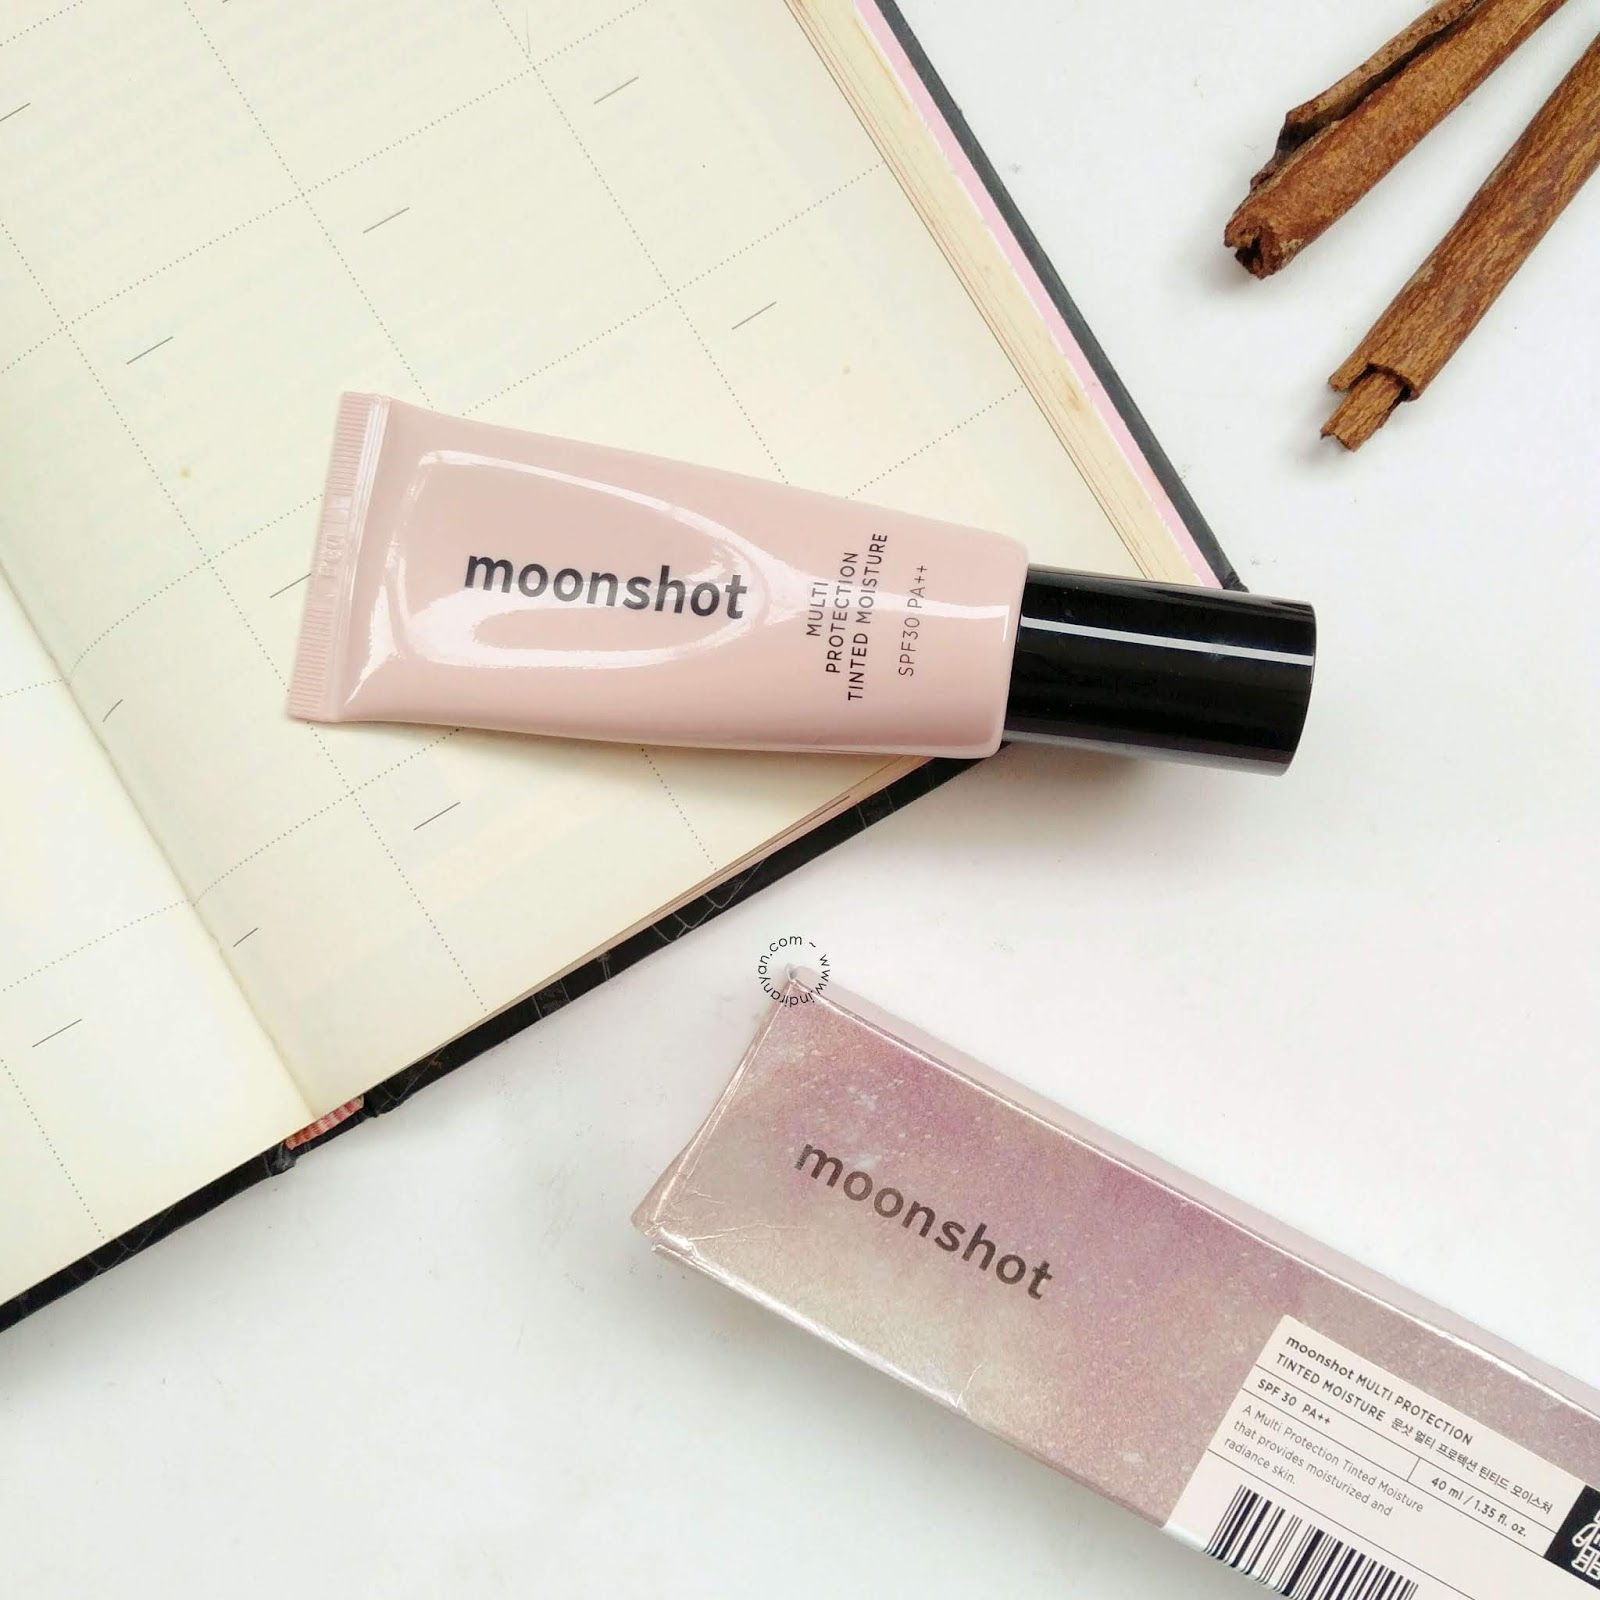 moonshot-multi-protection-tinted-moisture